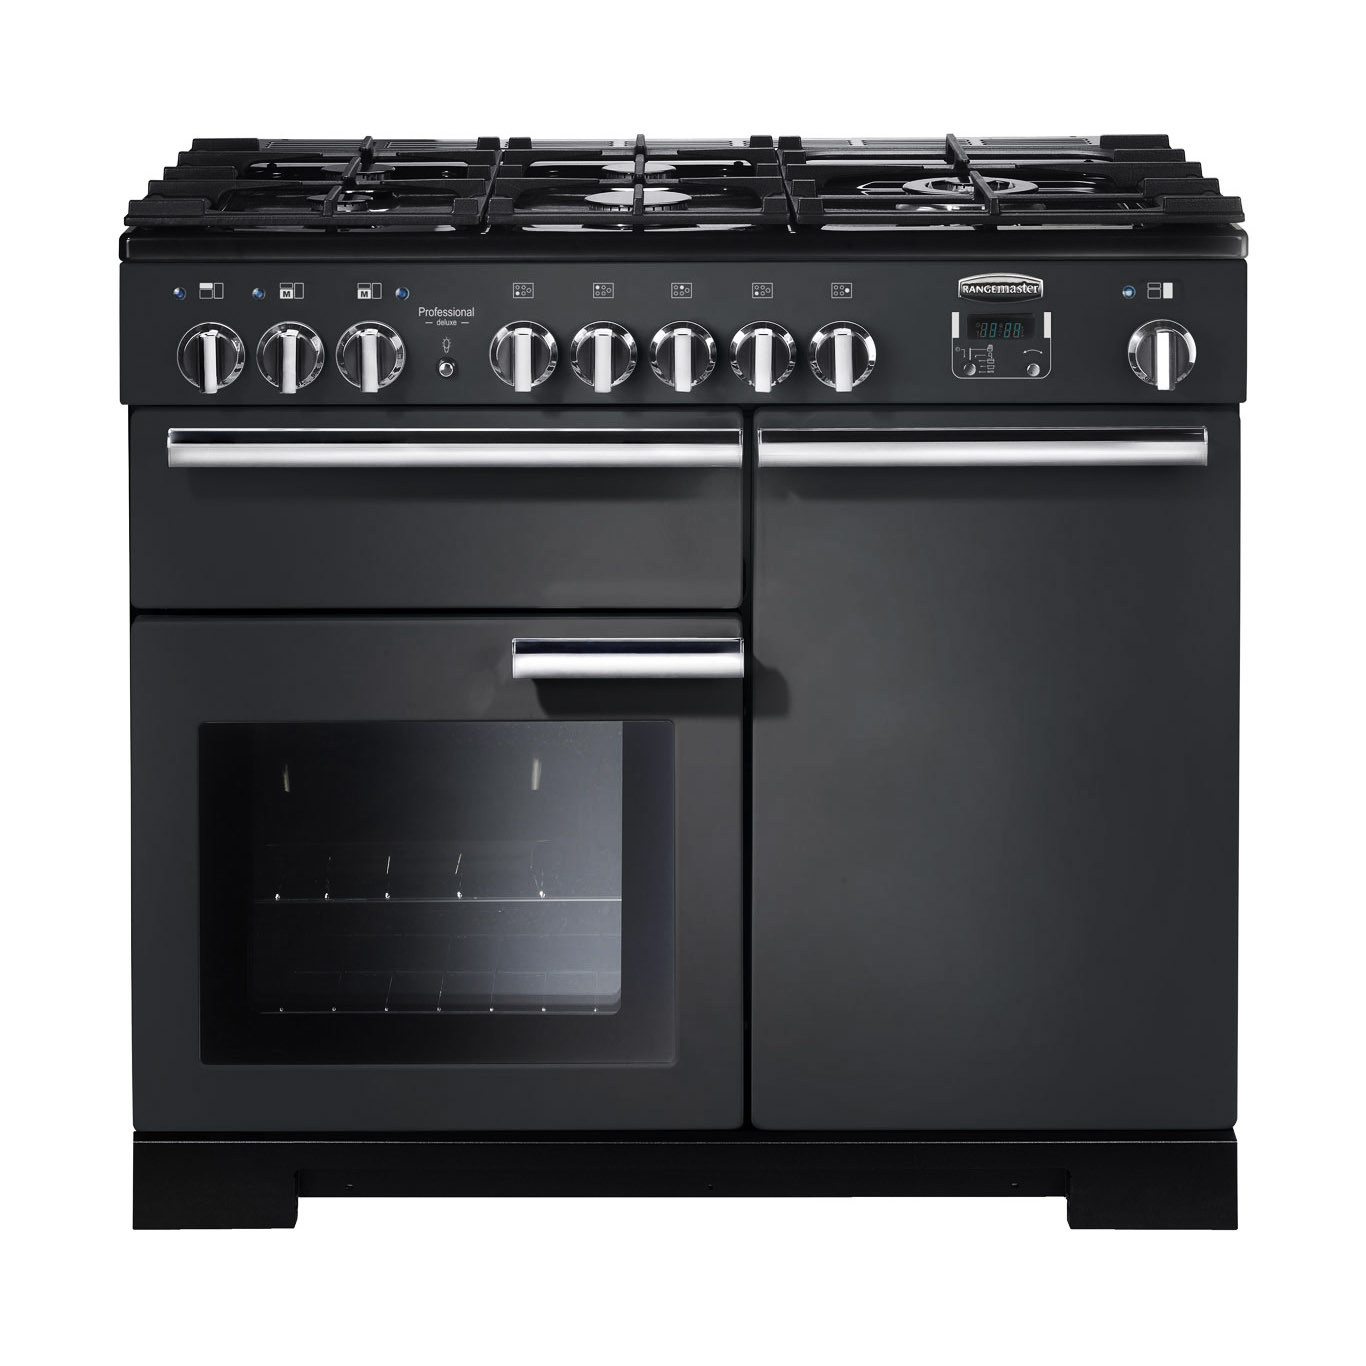 Rangemaster Pdl100dffsl Professional Deluxe 100 Dual Fuel